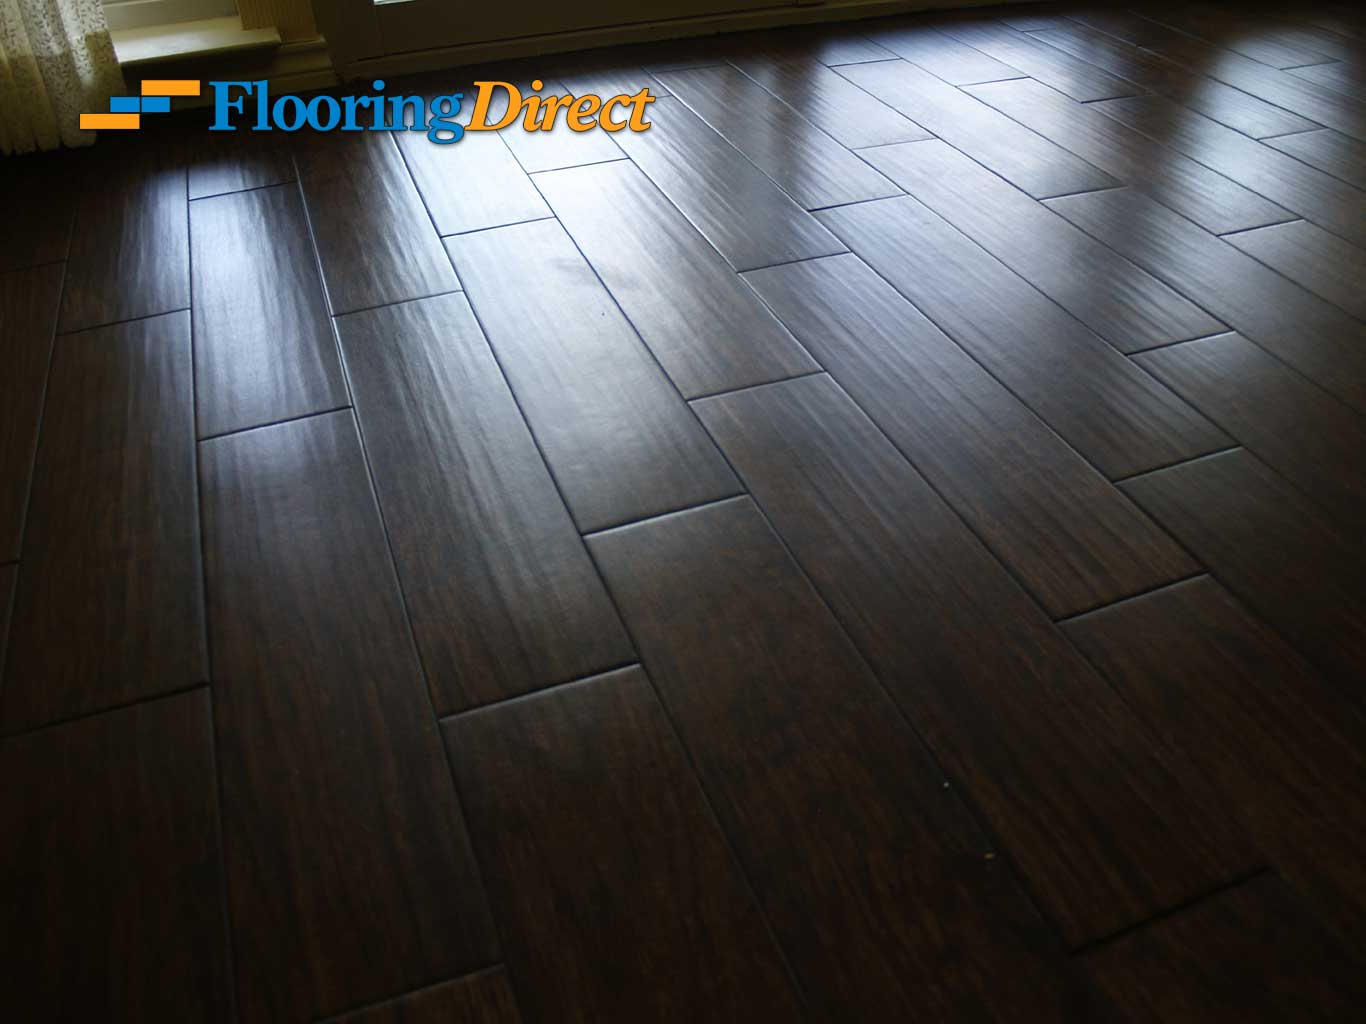 Wood-look Tile Flooring by Flooring Direct serving all of DFW including Ft Worth